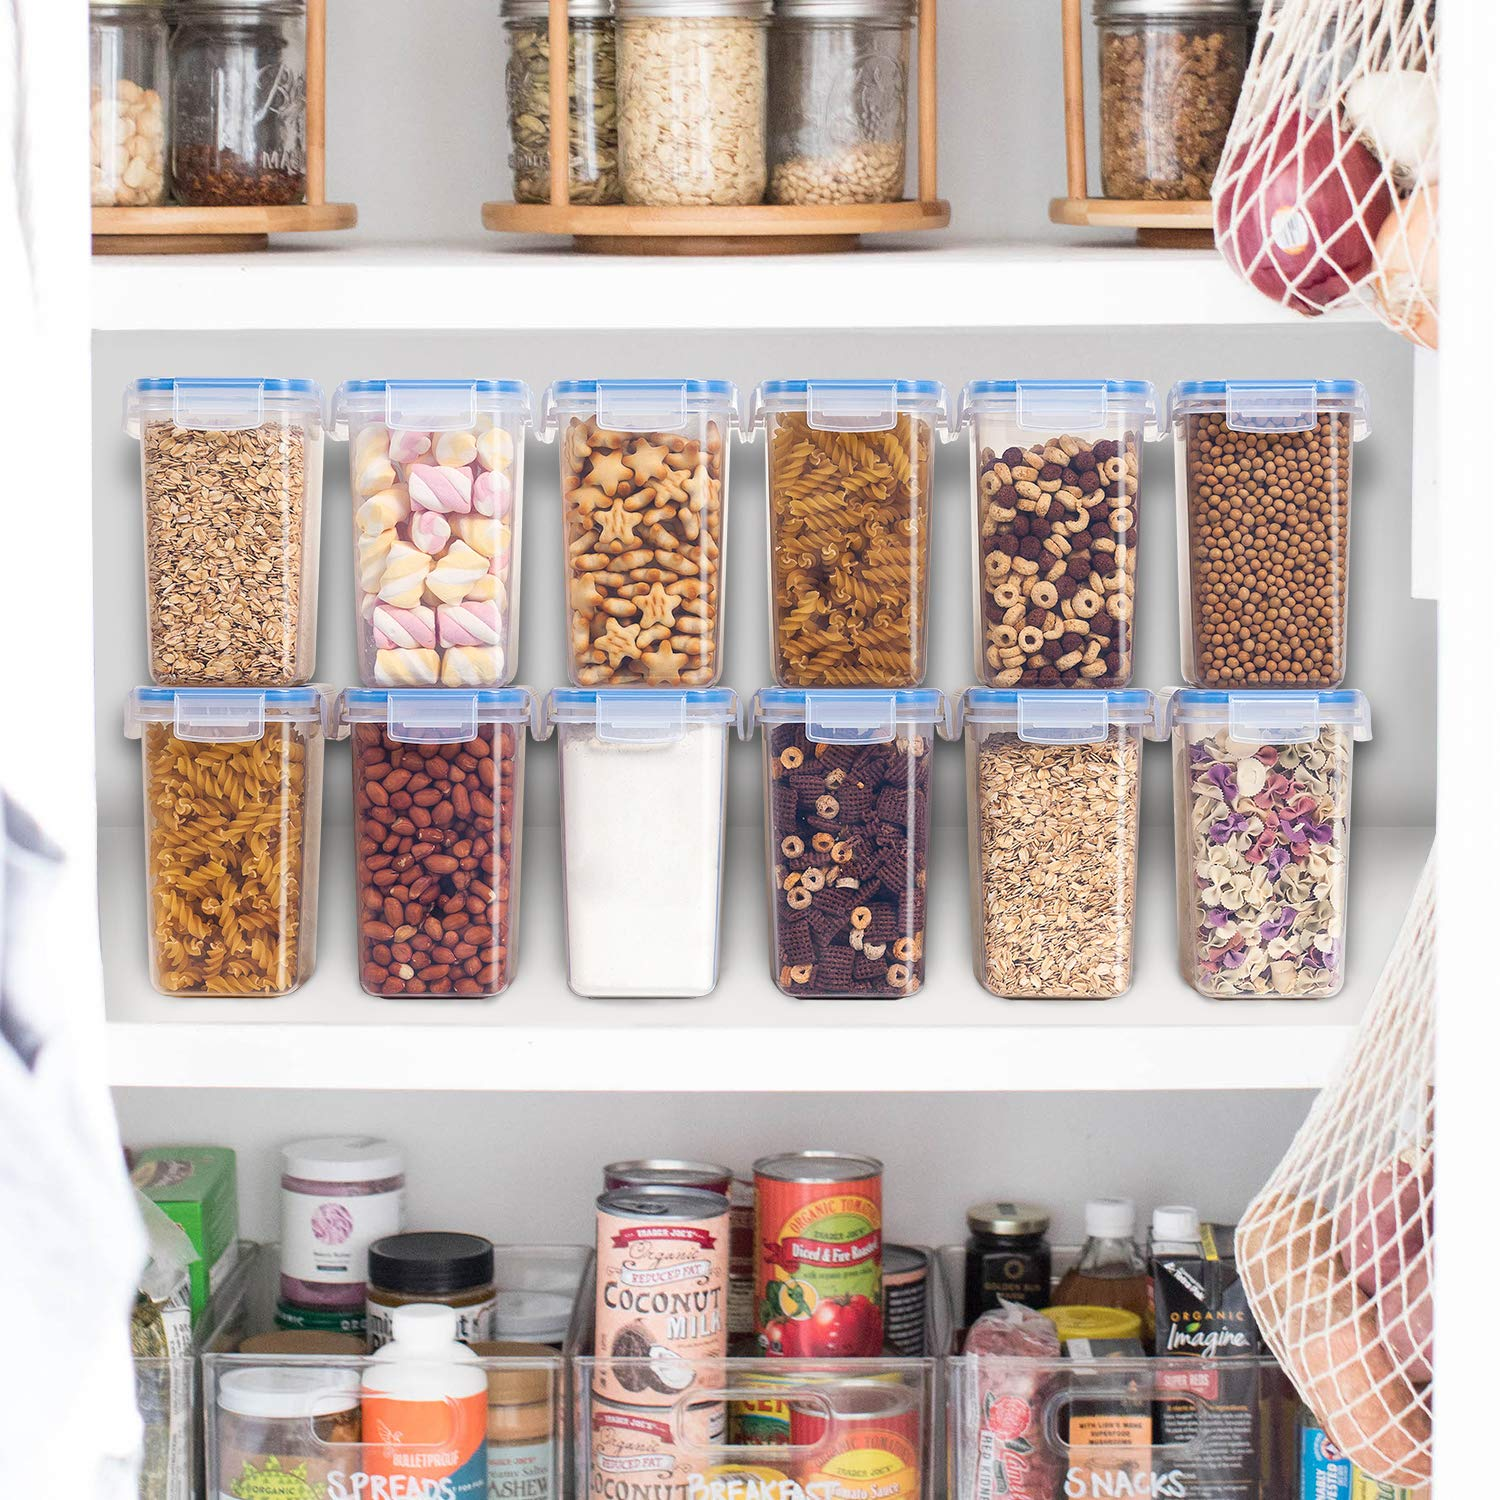 Vtopmart Airtight Food Storage Containers 12 Pieces - Plastic PBA Free Kitchen Pantry Storage Containers for Sugar,Flour and Baking Supplies - Dishwasher Safe - 24 Chalkboard Labels and 1 Marker by Vtopmart (Image #5)